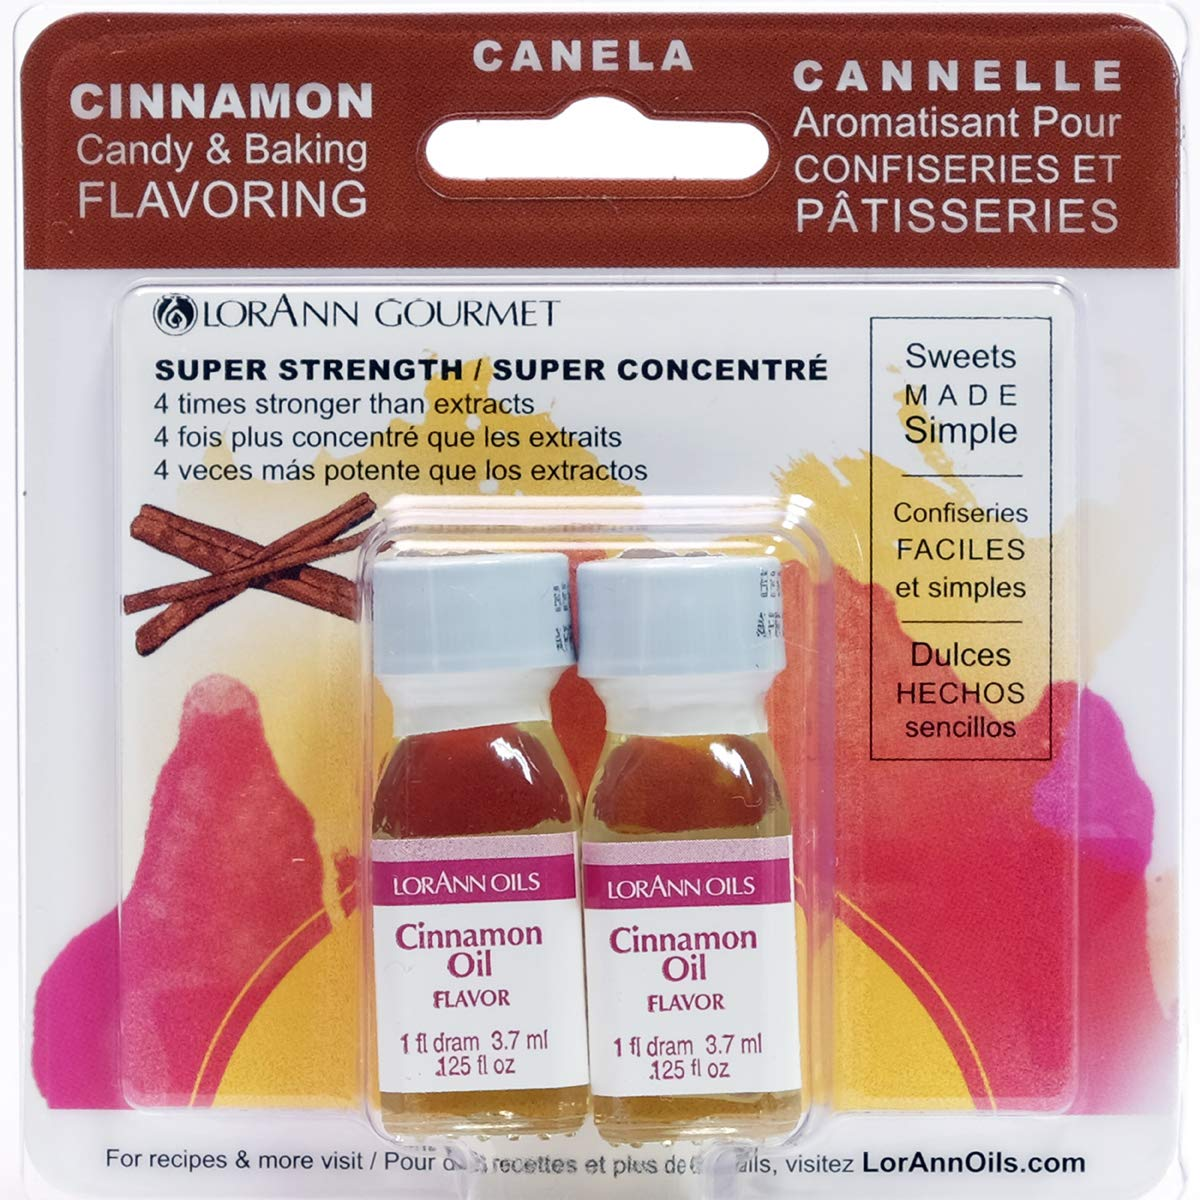 LorAnn Cinnamon Oil Super Strength Flavor, 1 dram bottle (.0125 fl oz - 3.7ml) Twin pack blistered